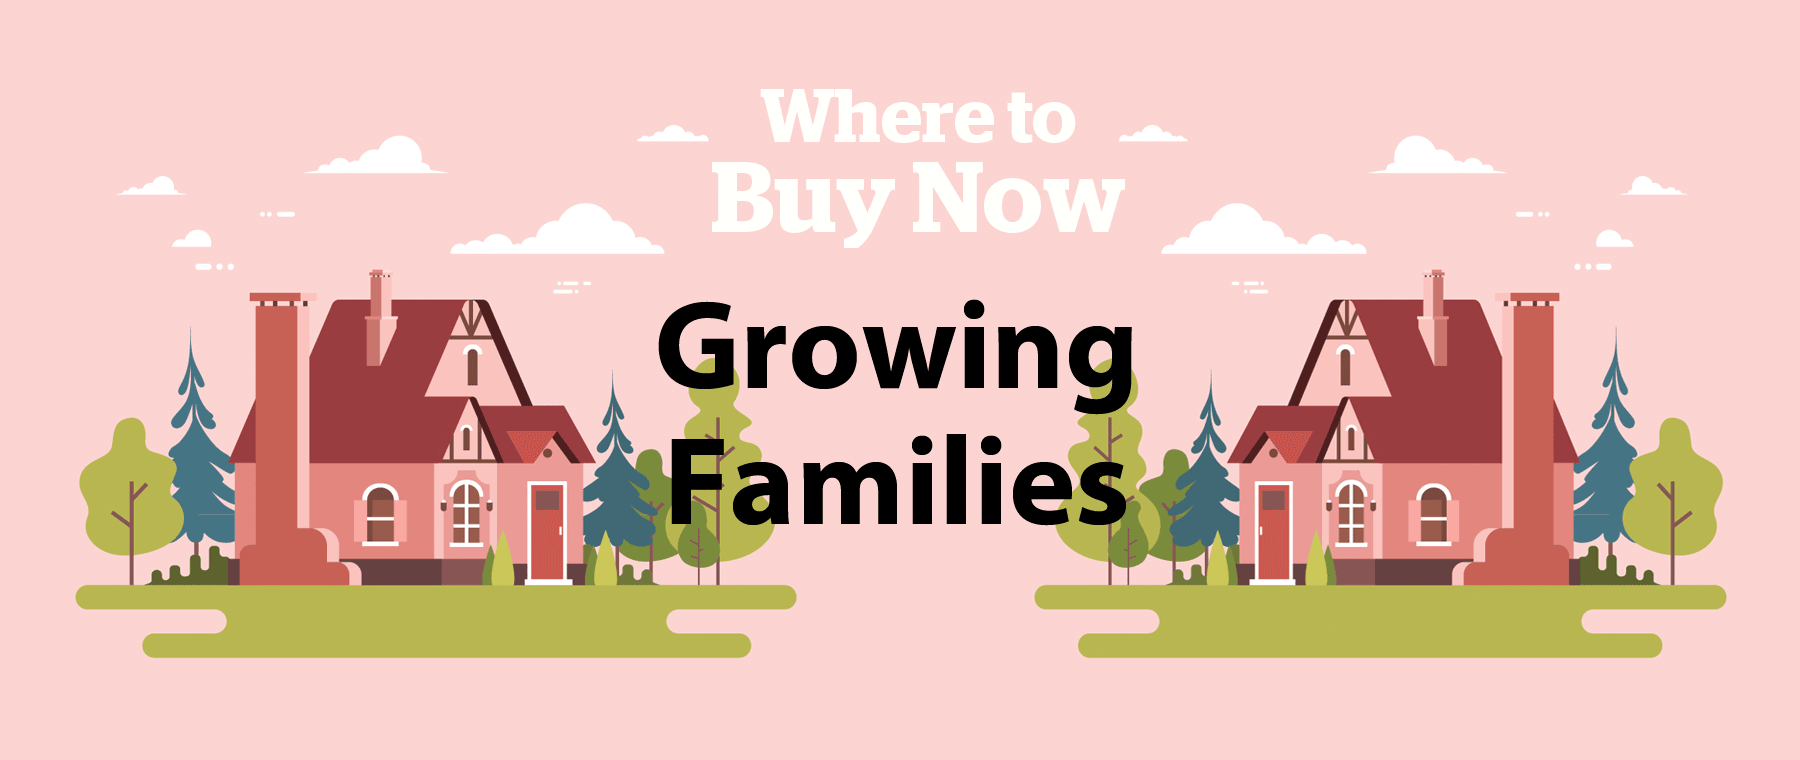 Where to Buy Now: 5 best neighbourhoods for growing families